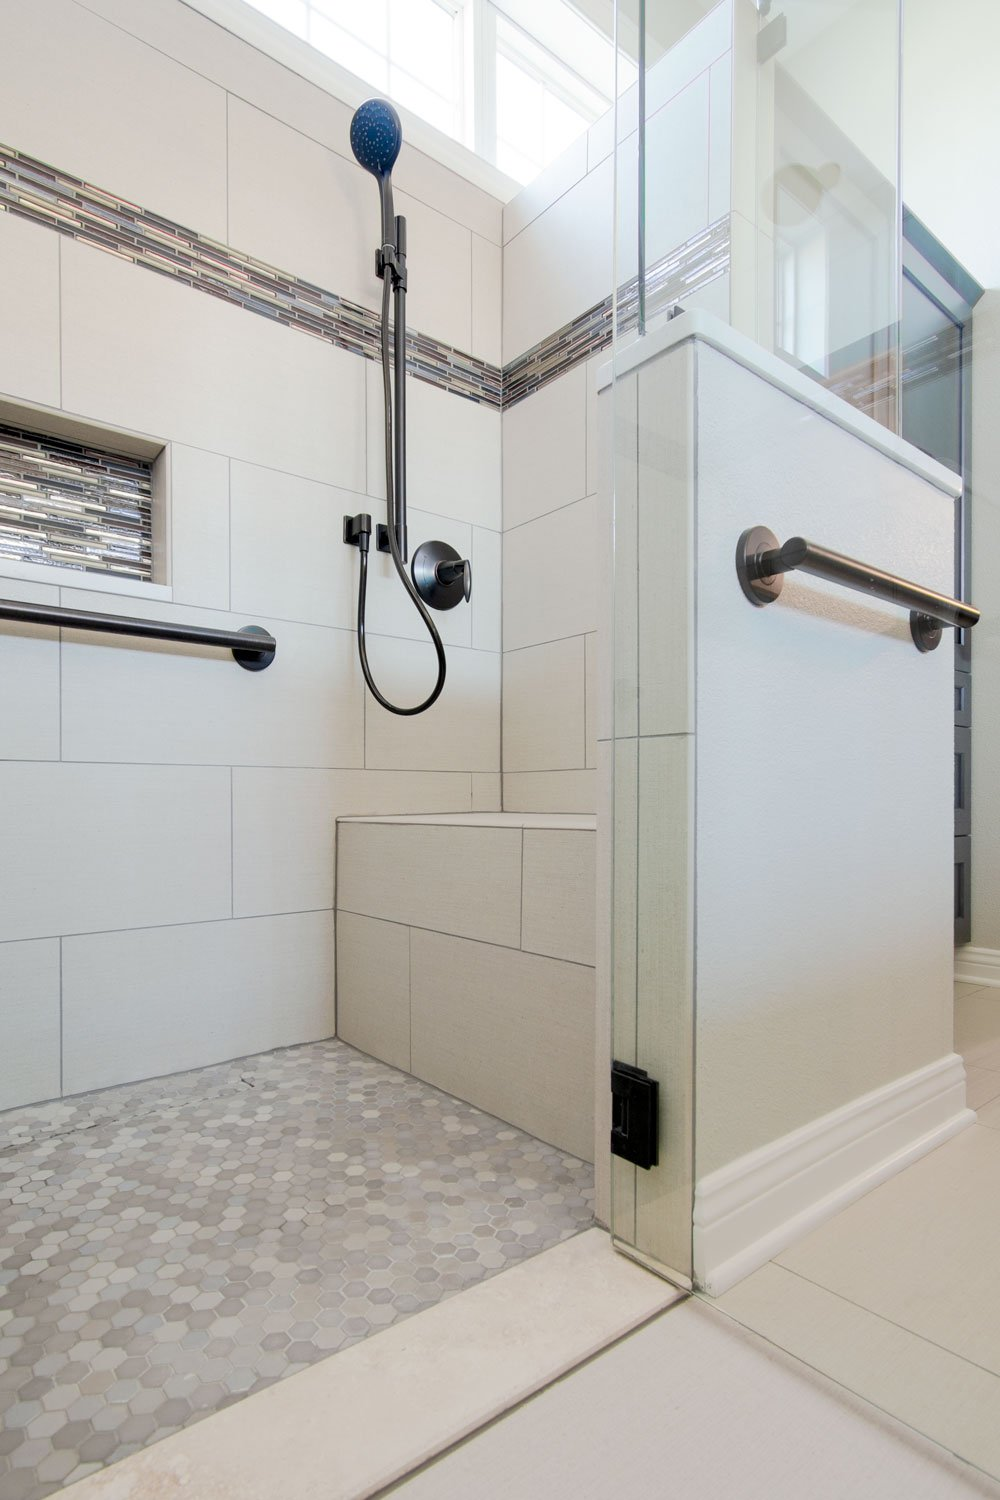 Curbless accessible shower